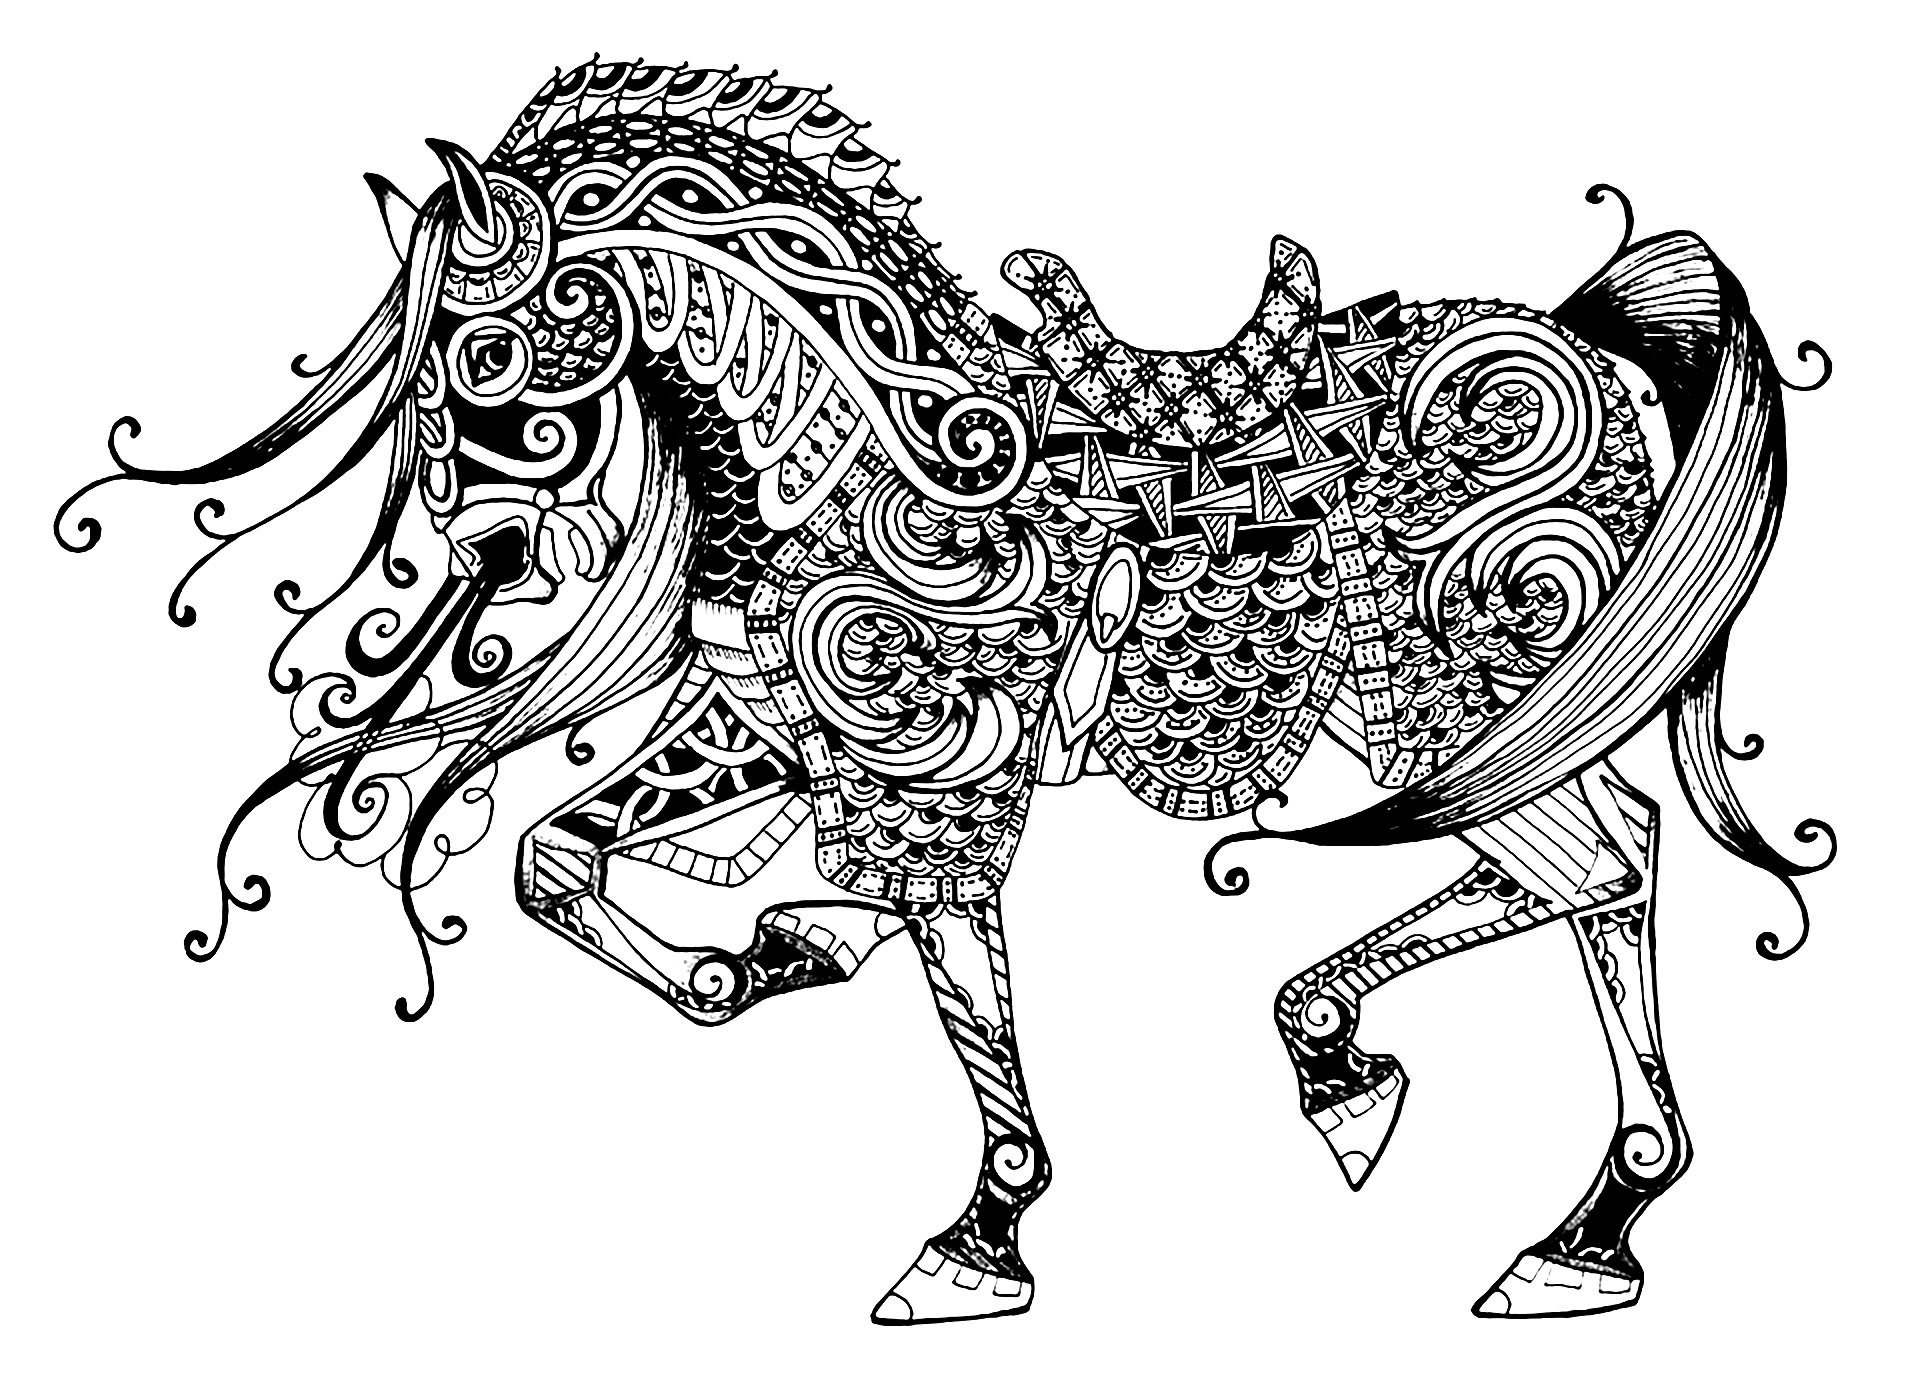 Coloring Pages Horses Horses Free To Color For Kids Horses Kids Coloring Pages